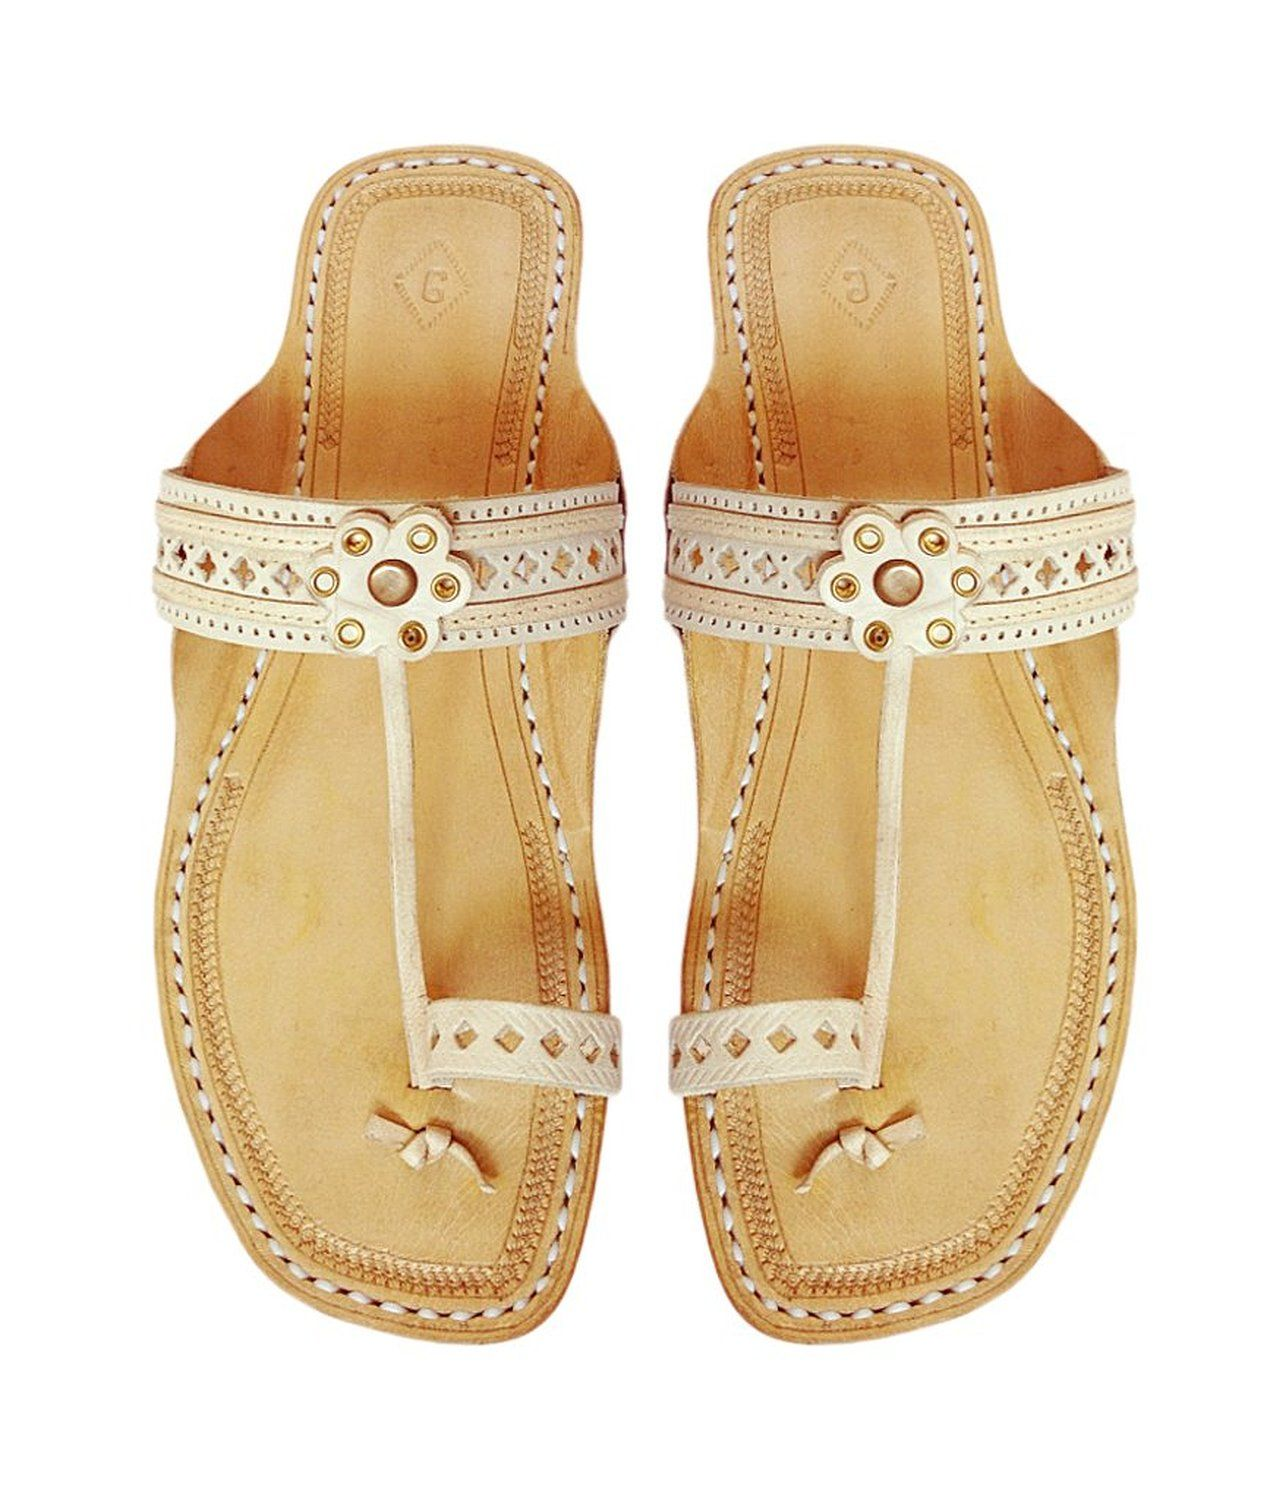 b6c5d2f9cca25 Amazon.com  Kolhapuri Chappal Women s Natural Leather Sandal US6  Shoes